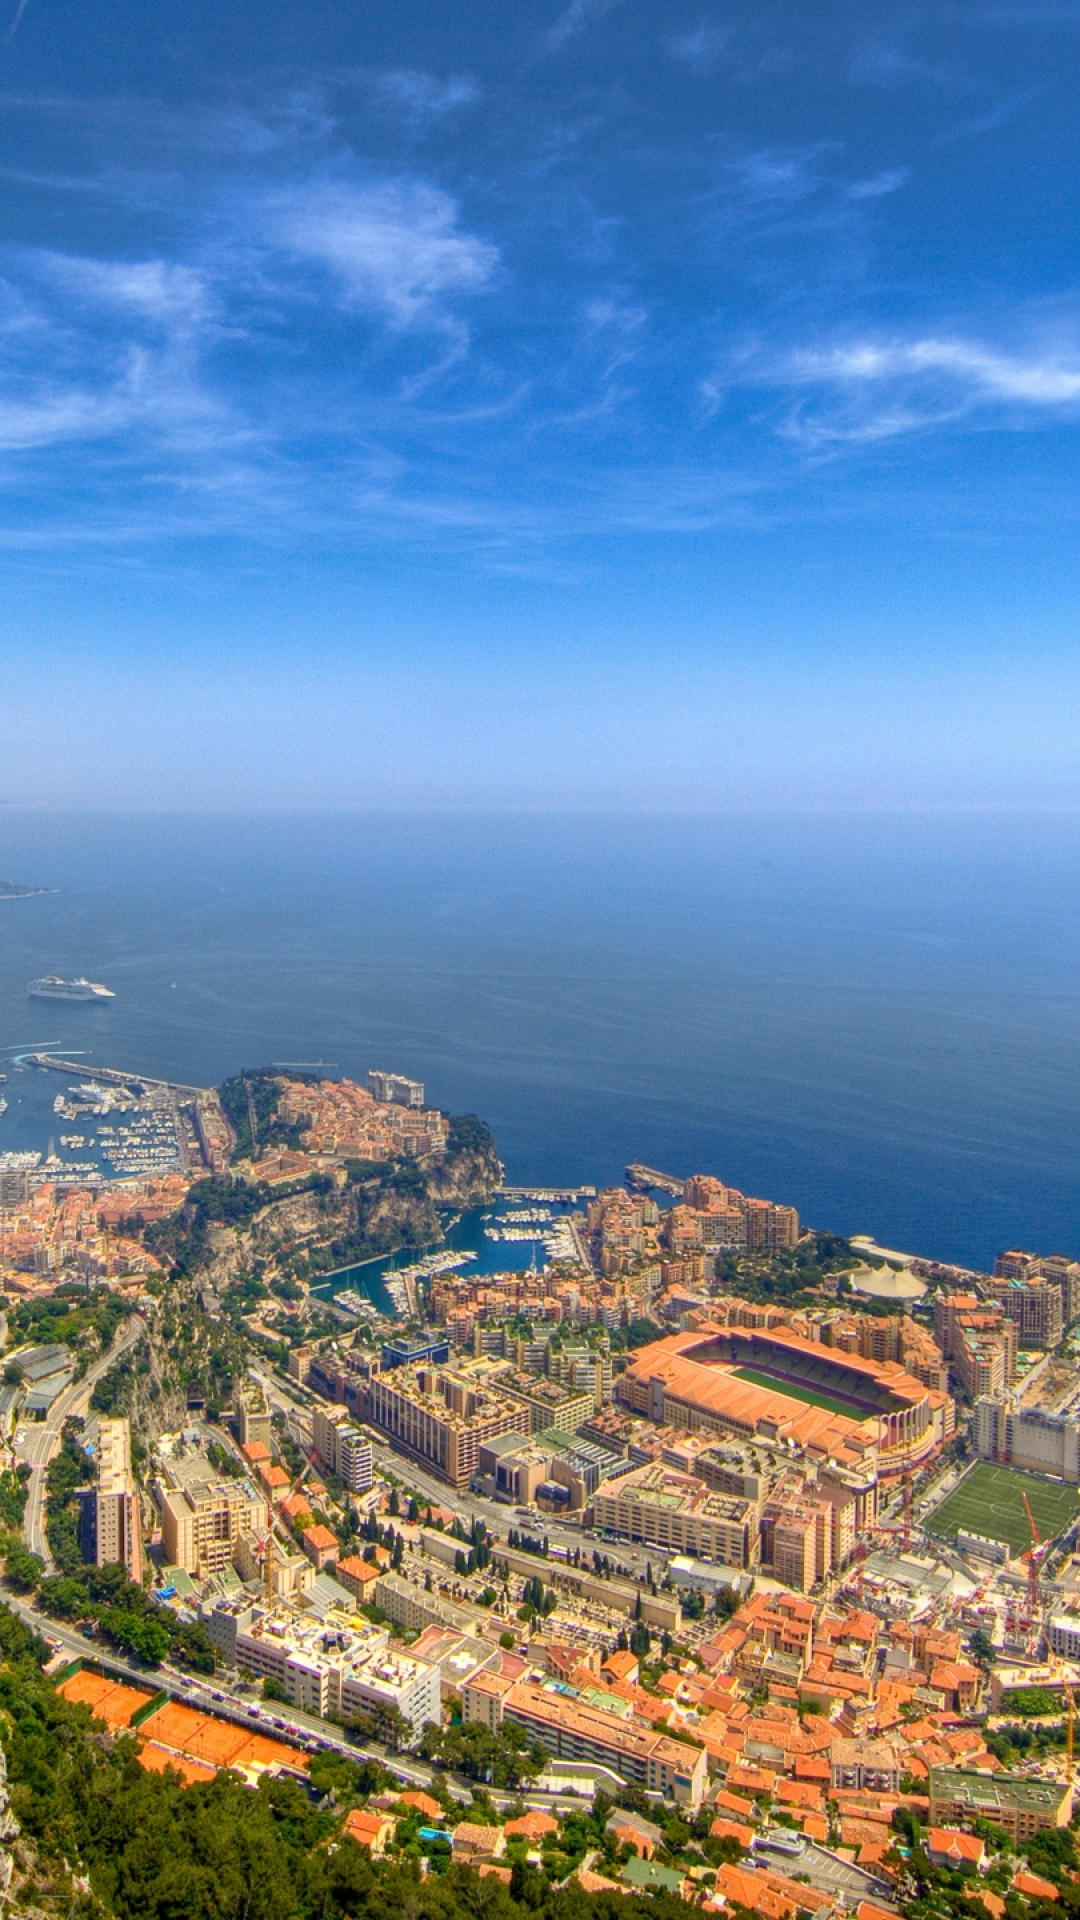 iphone wallpaper monaco monte carlo sky sea space landscape skyline harbor nature Monte Carlo